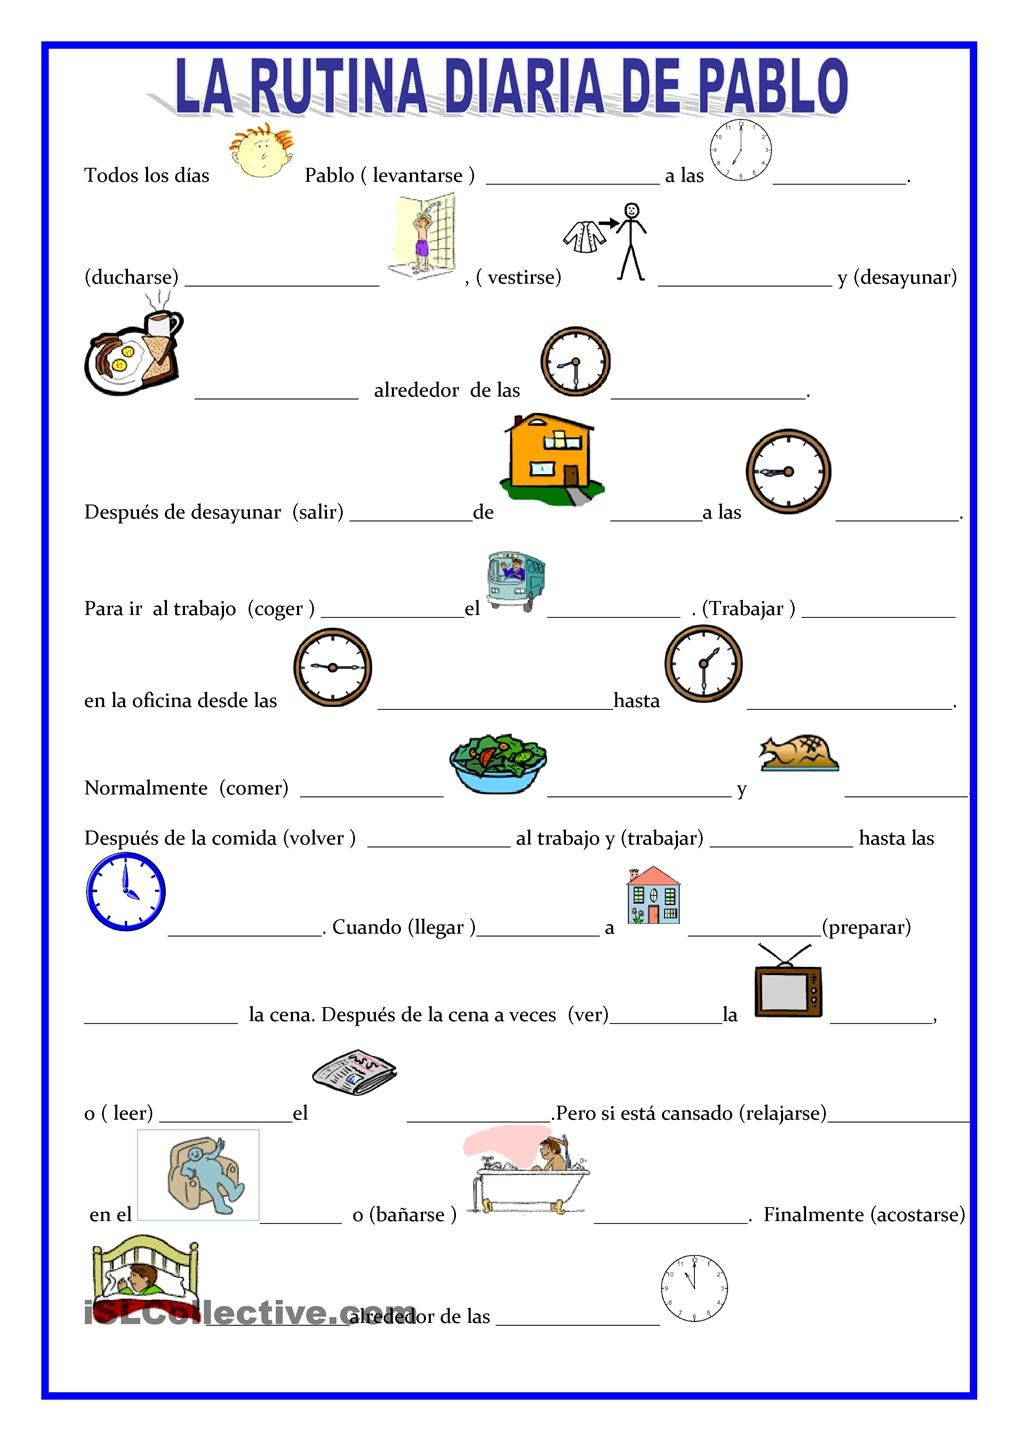 Workbooks weather expressions in spanish worksheets : La rutina de Pablo | Gratuito ELE worksheets | Rutina Diaria ...